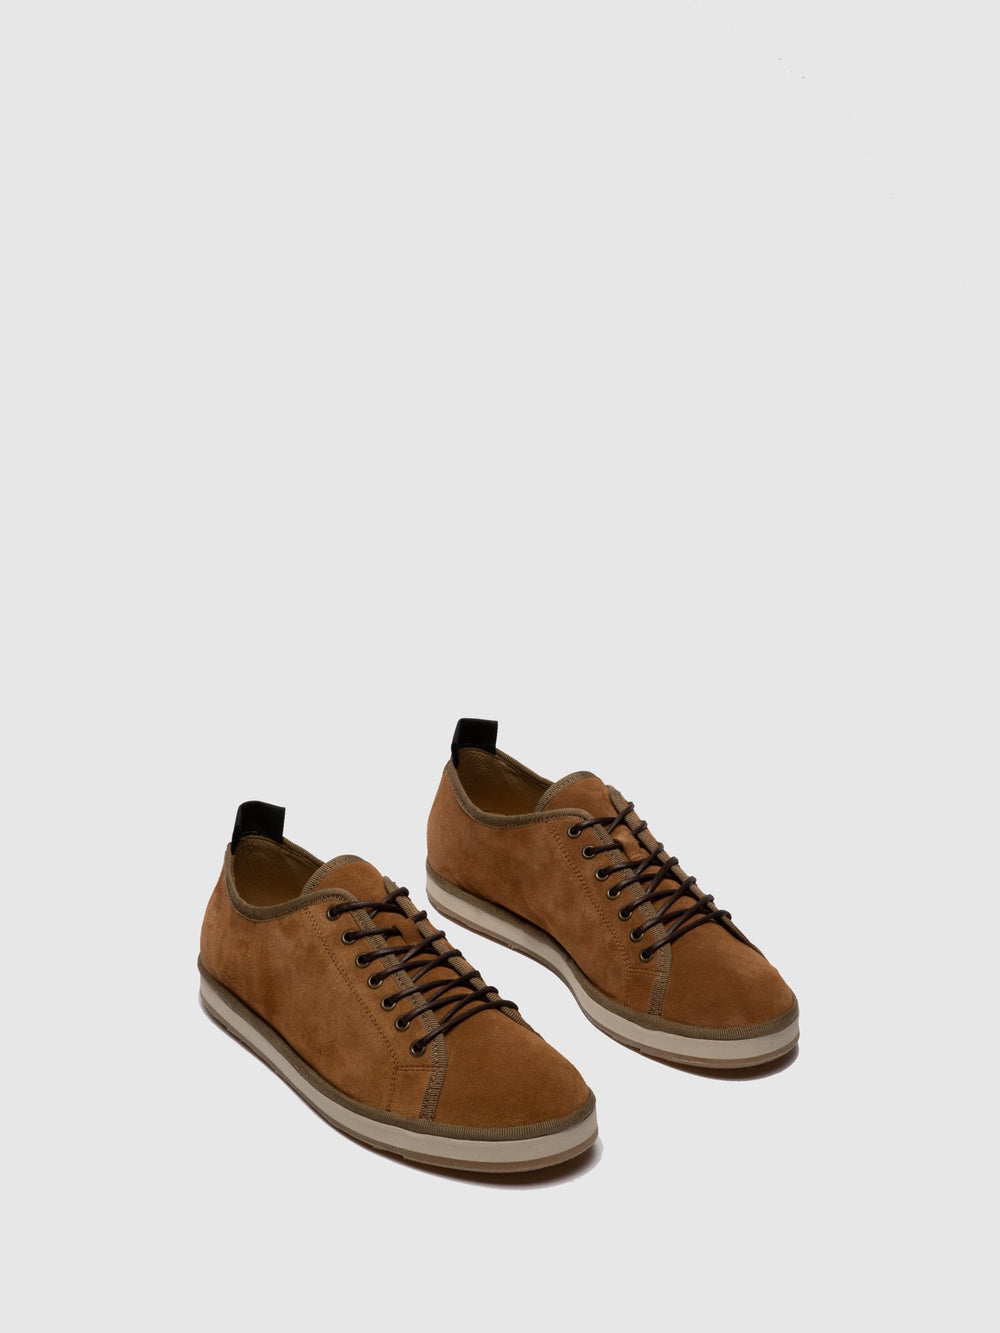 Tan Lace-up Shoes